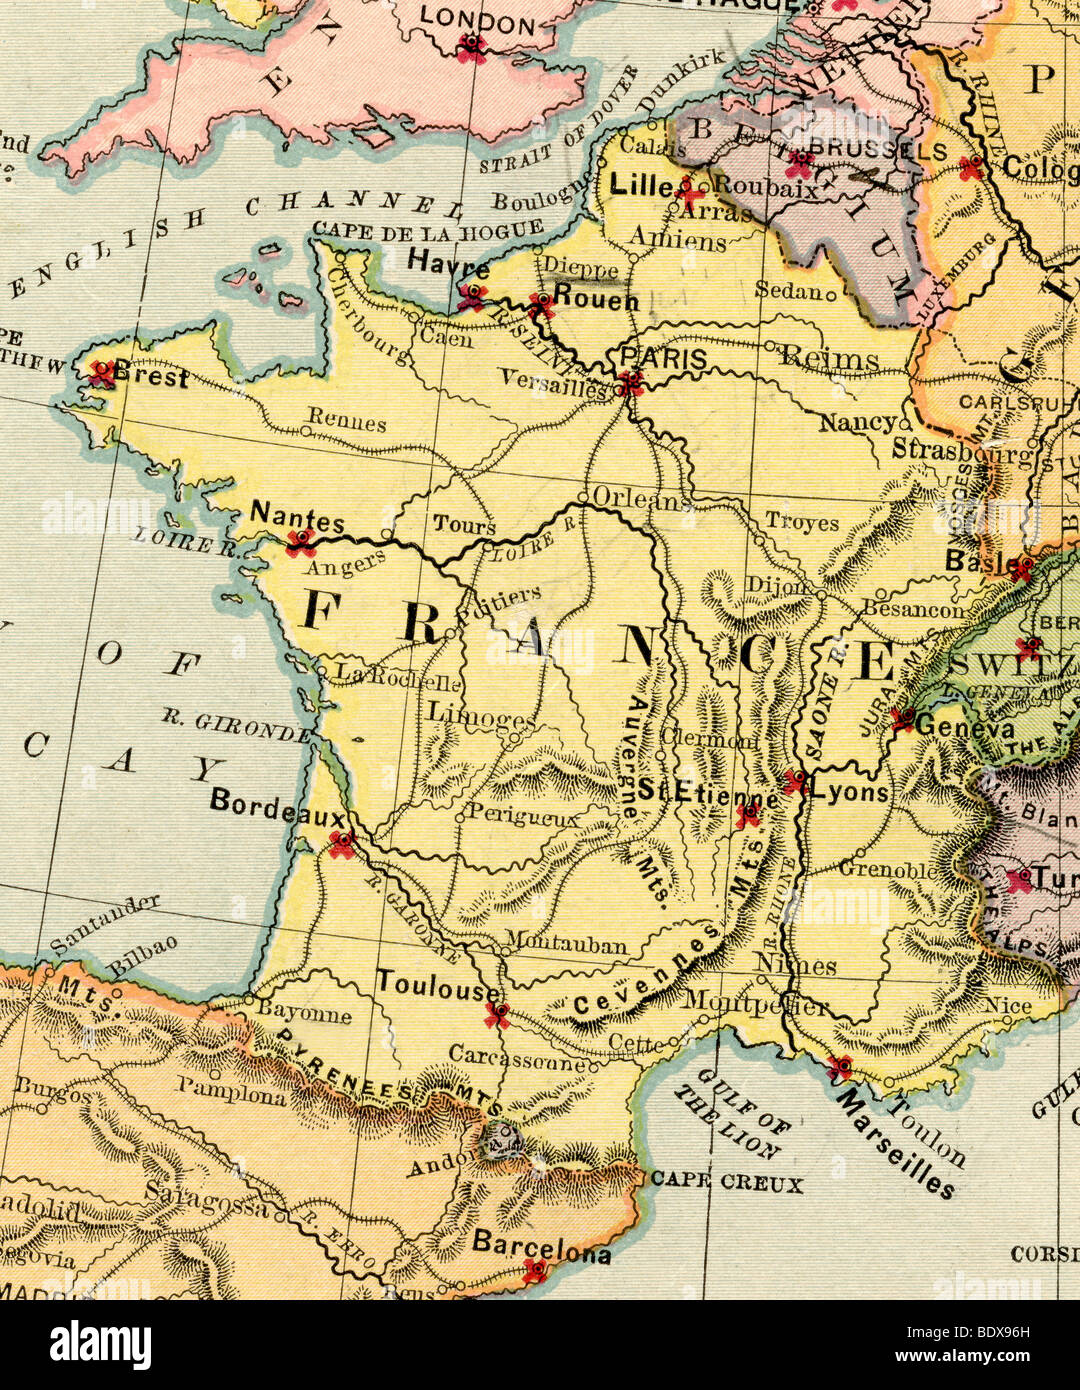 Old Map Of France.Original Old Map Of France From 1875 Geography Textbook Stock Photo